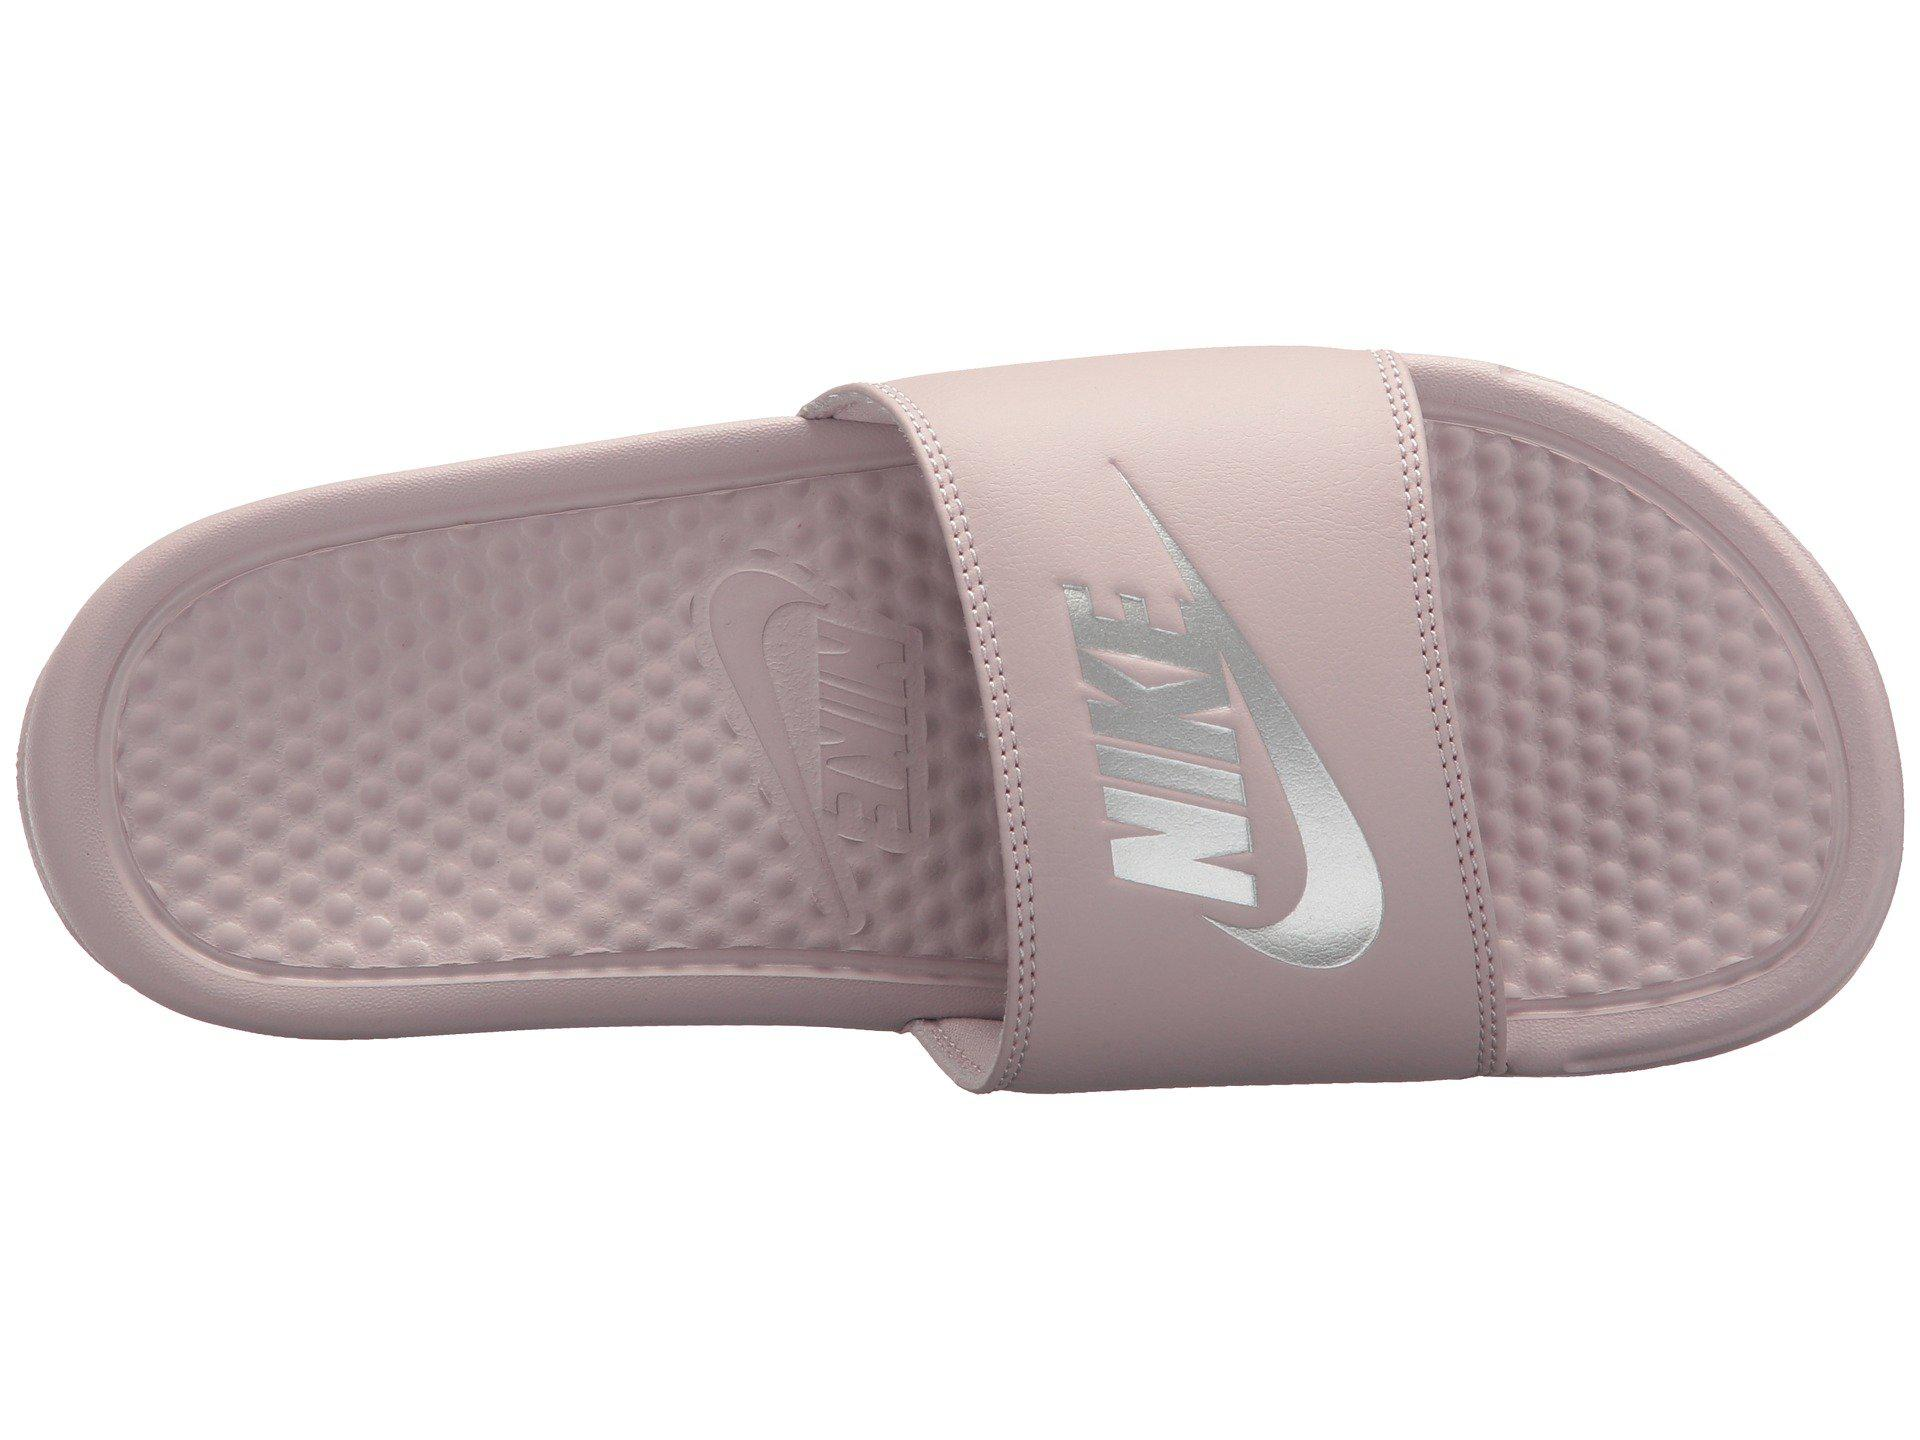 online retailer 4a95b 1ddc1 Nike - Multicolor Wmns Benassi Jdi Particle Rose  Metallic Silver - Lyst.  View fullscreen